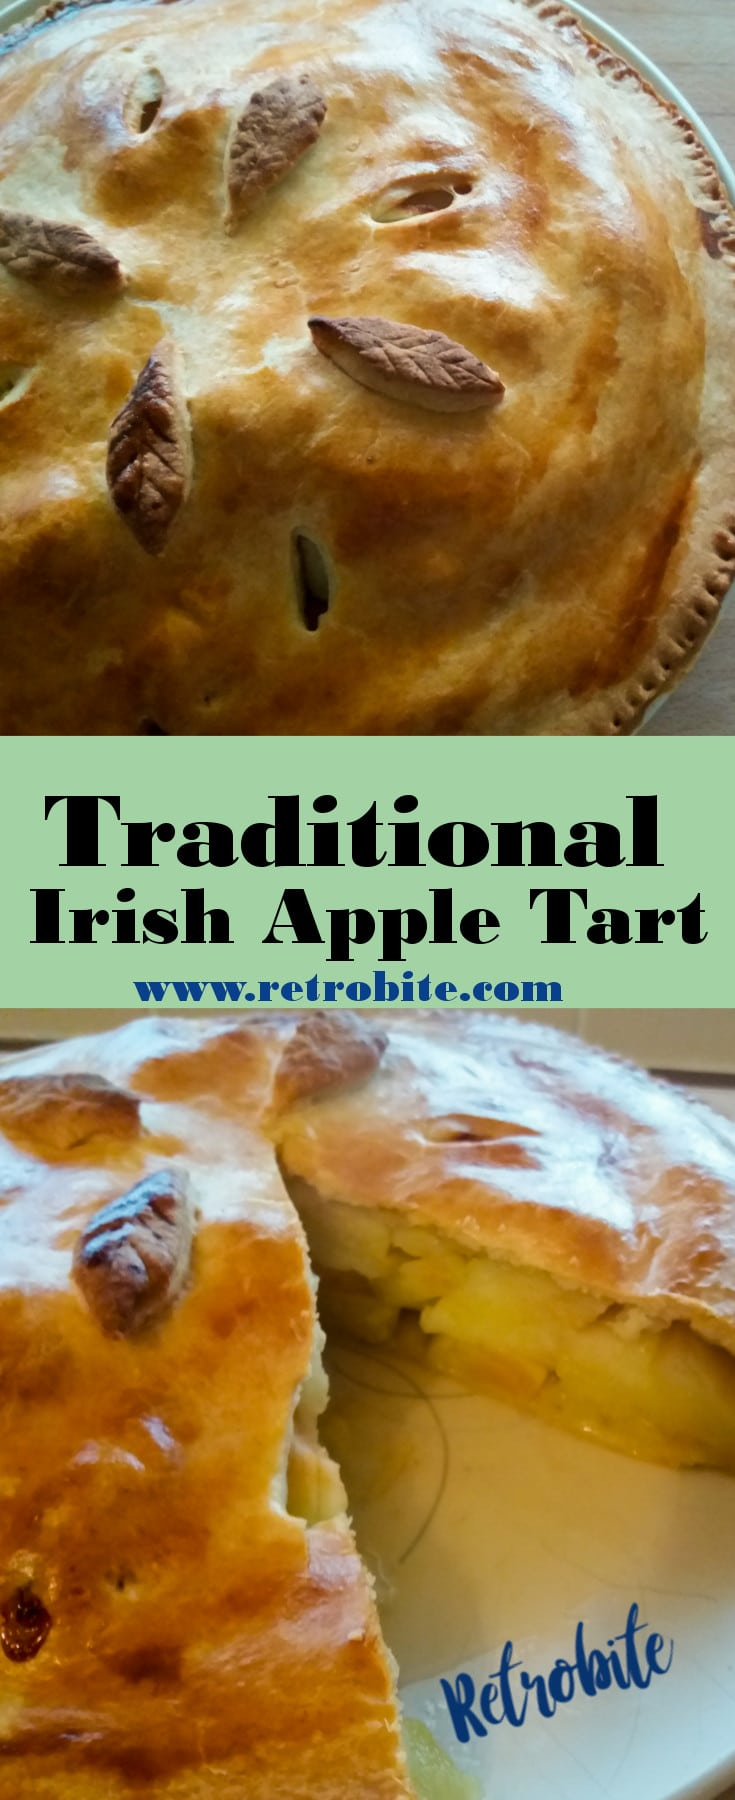 Tradtional Irish Apple Tart Recipe